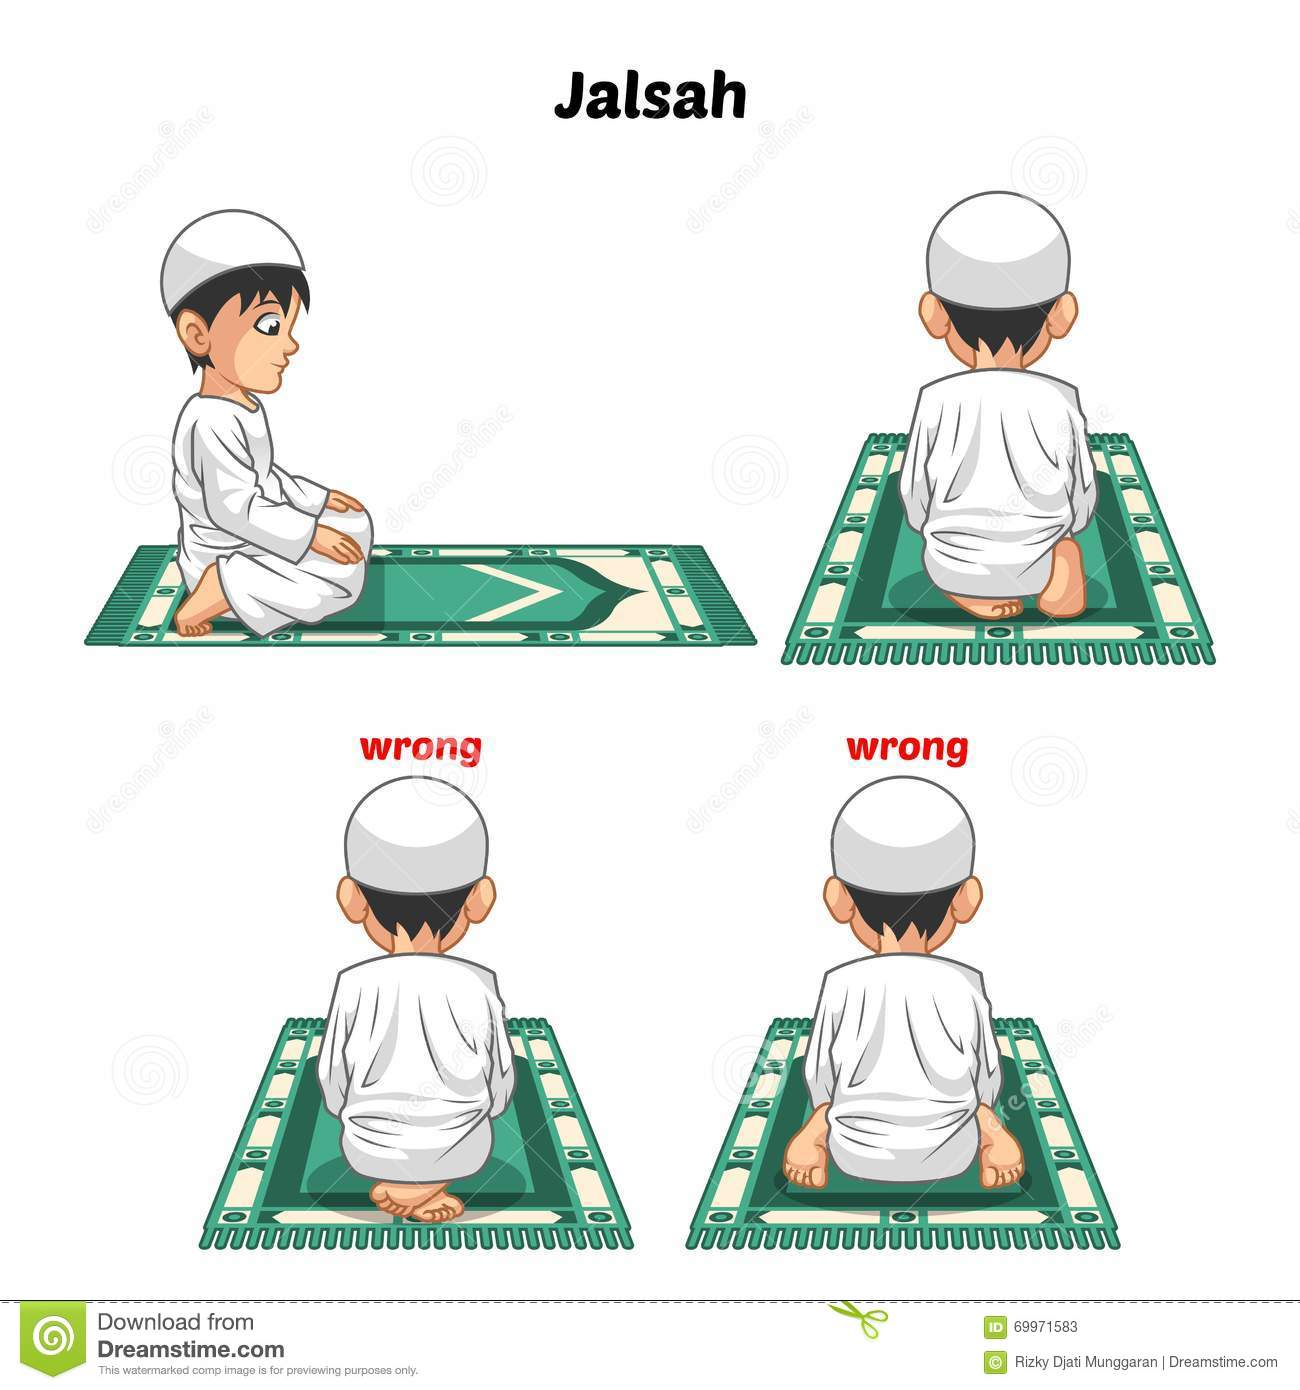 how to perform salat step by step guide